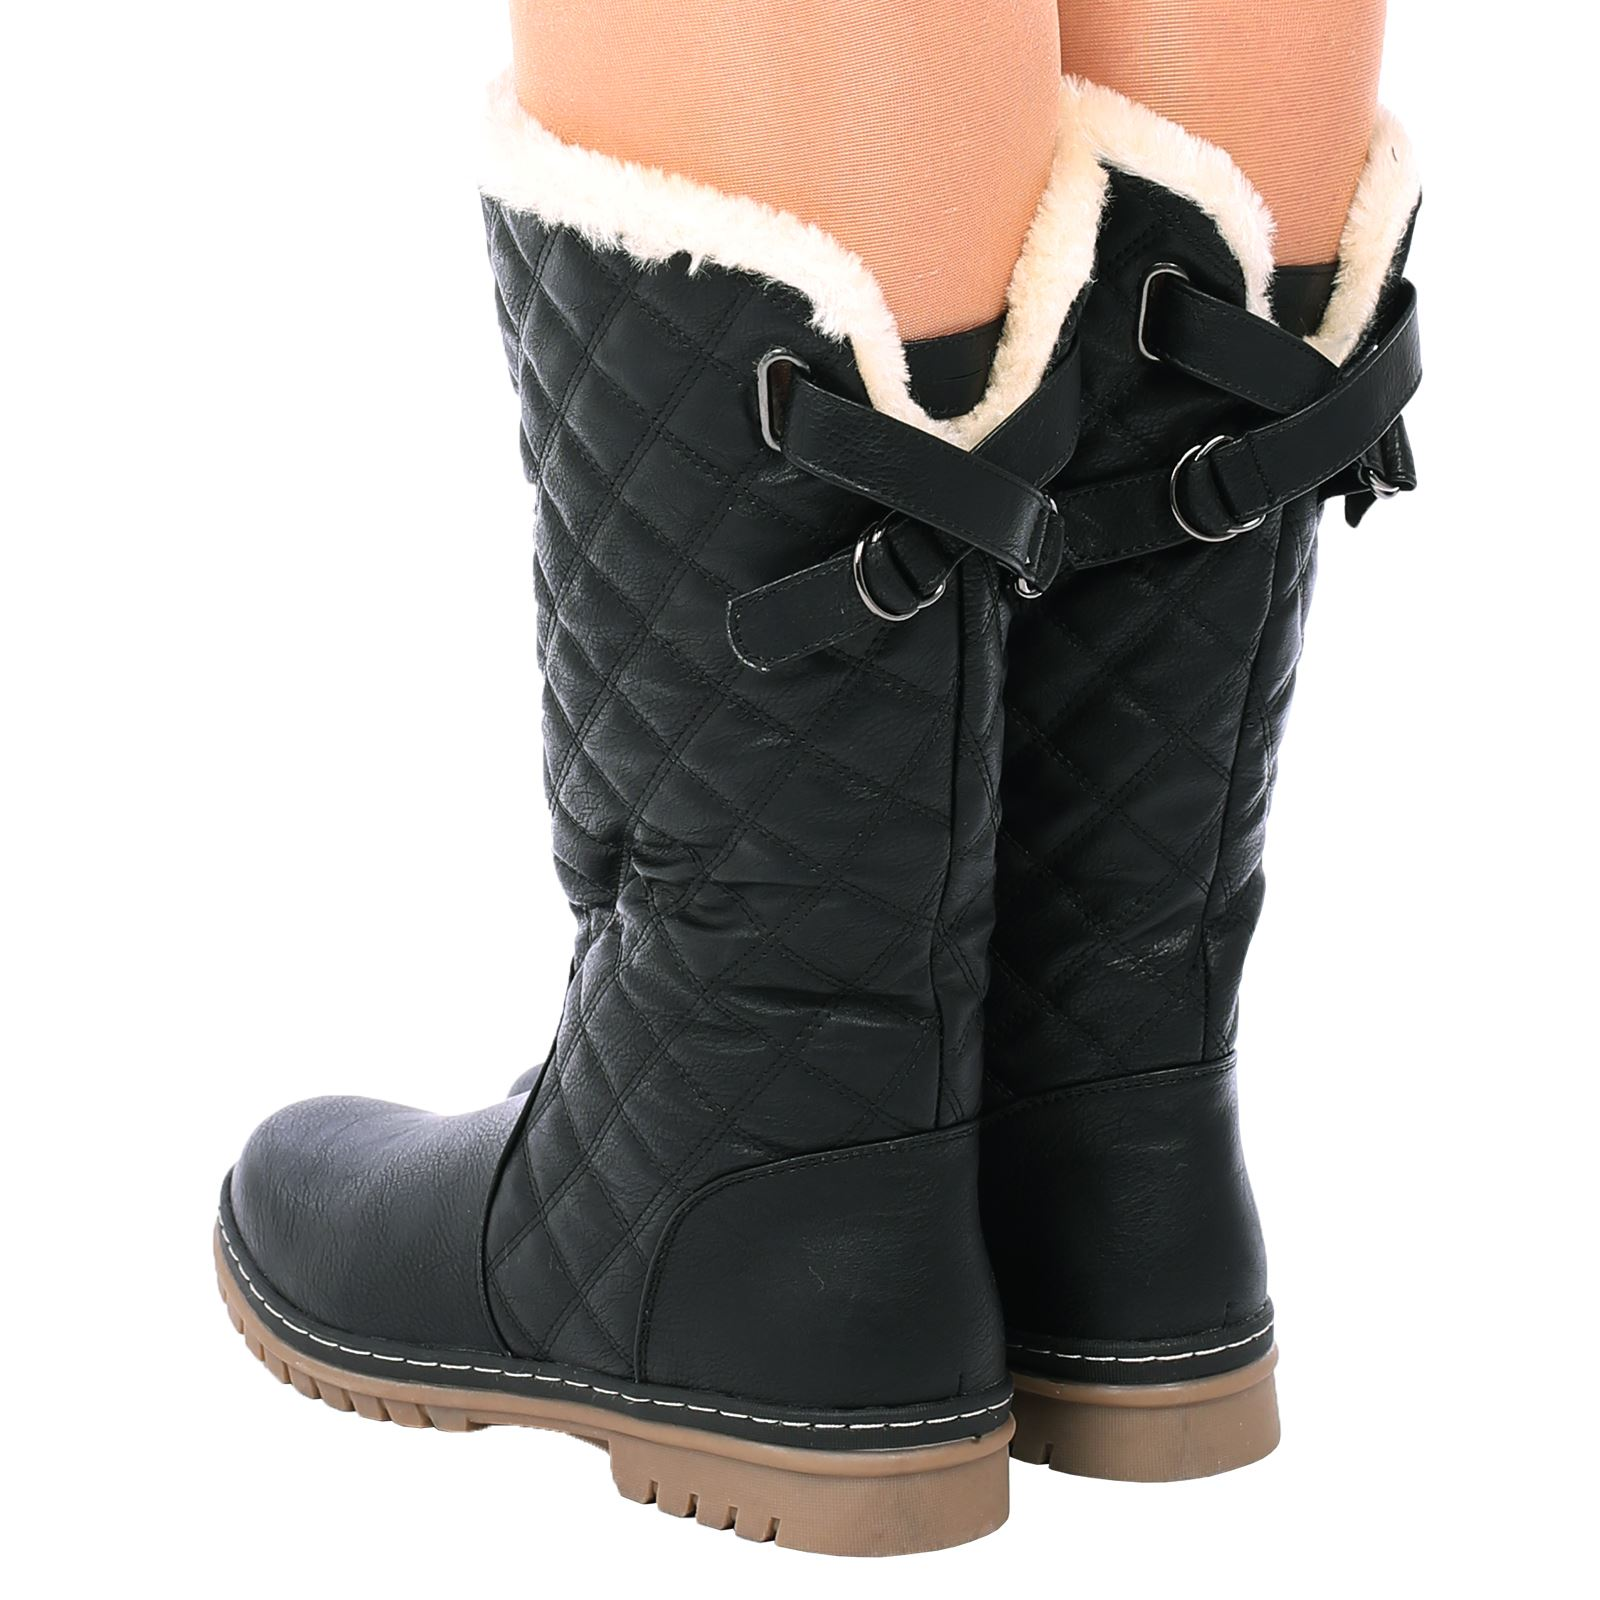 f5efa4343d3 Details about S2A Womens Ladies Beige Fur Lined Quilted Rain Moon Ski  Winter Warm Snow Boots